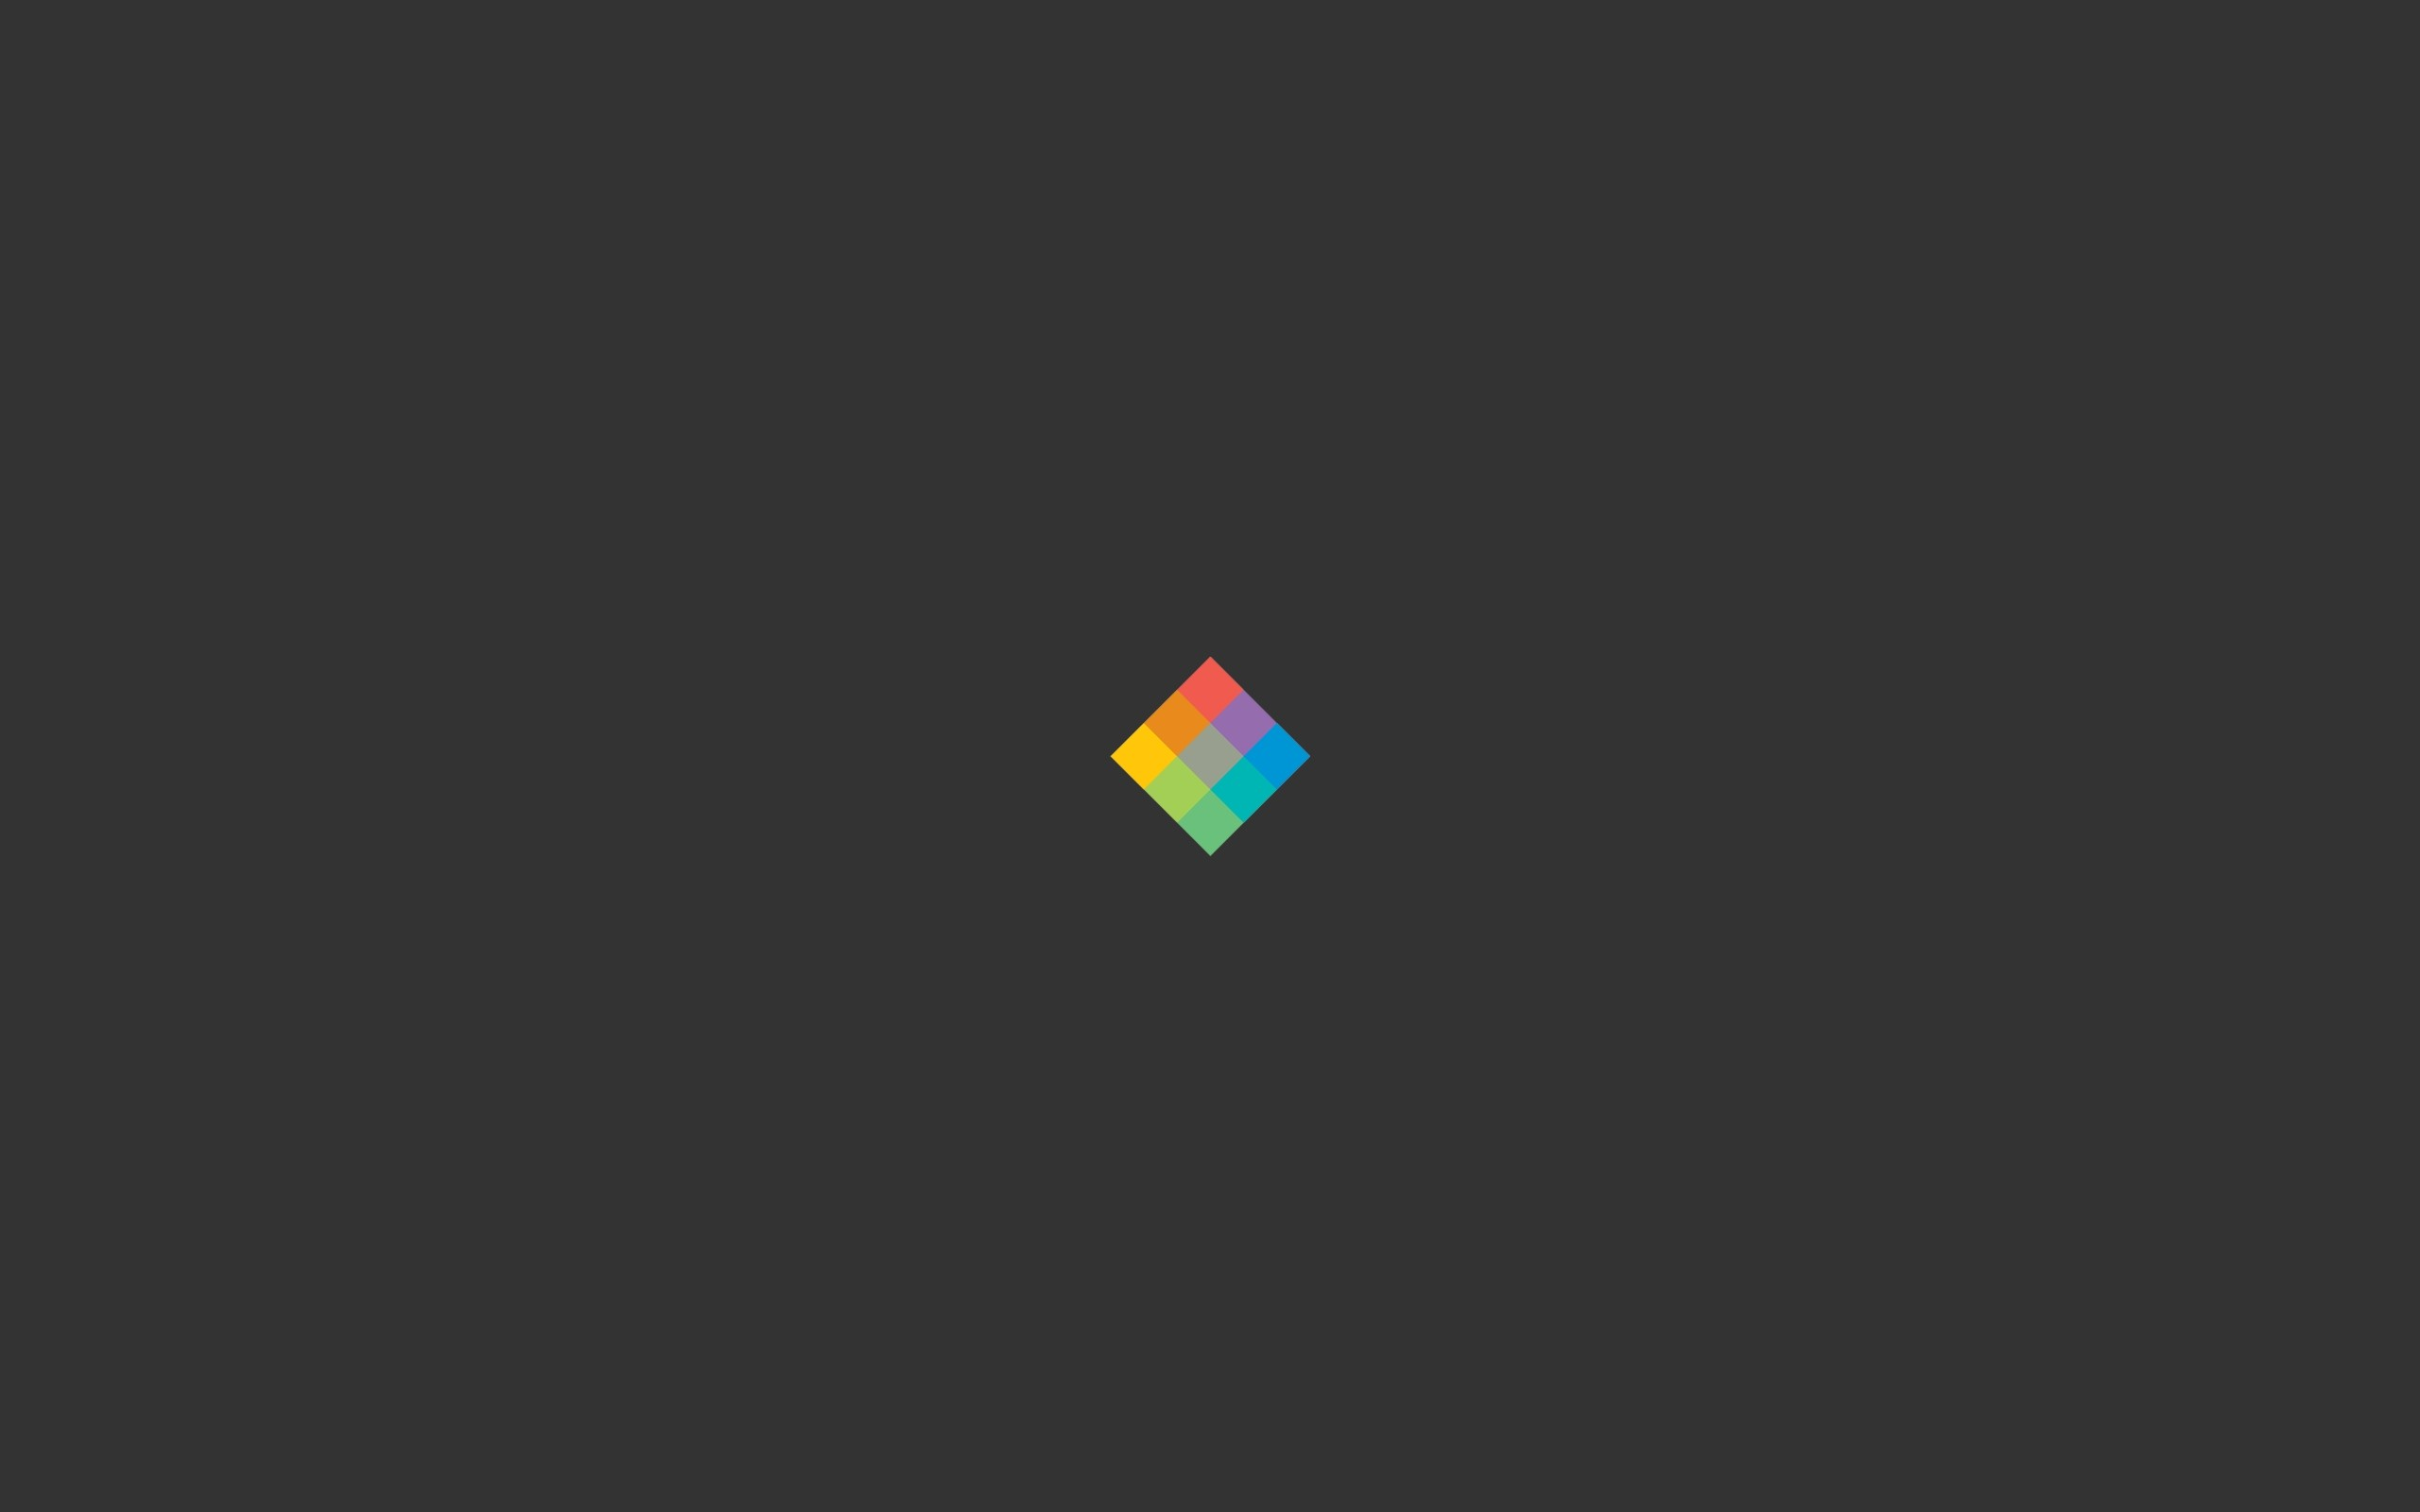 2560x1600 Download Wallpaper  Minimalist cube, Bright, Background .